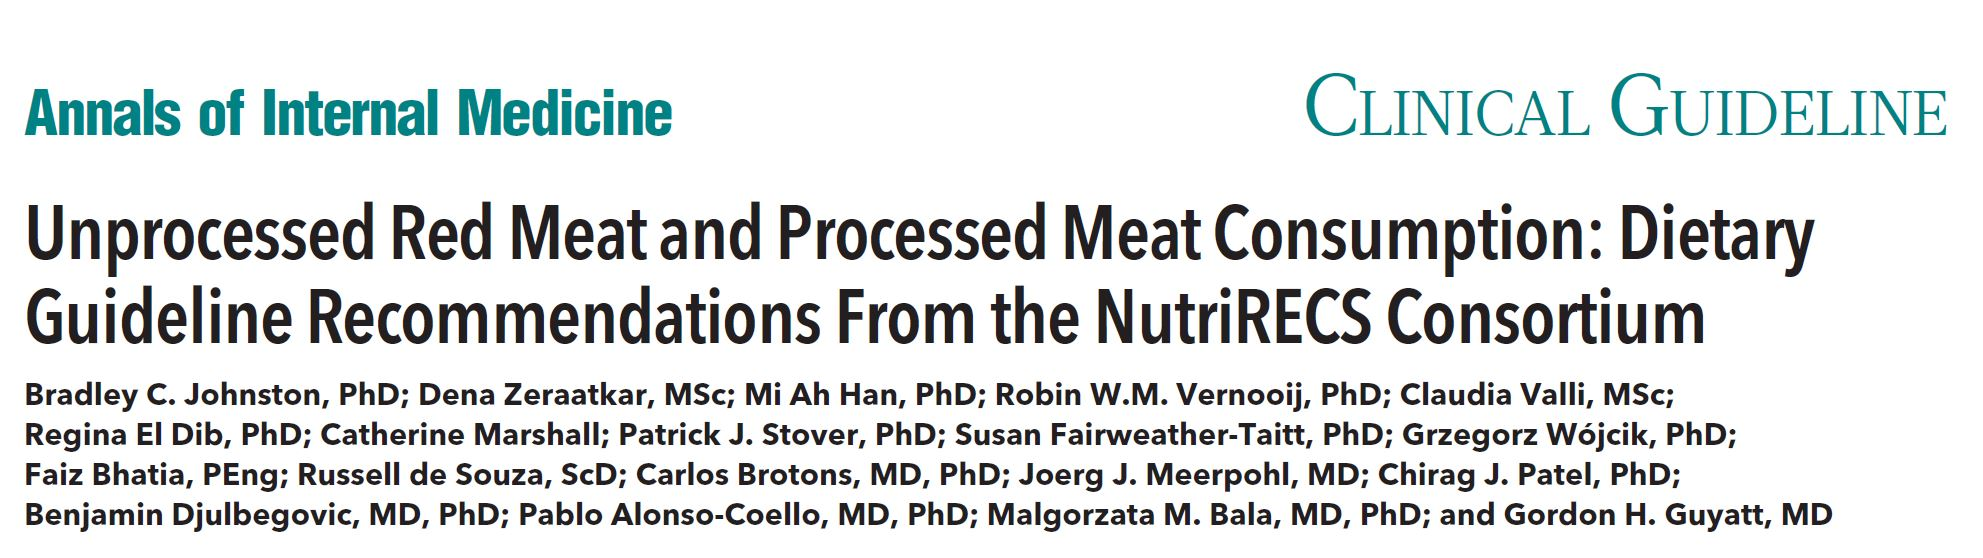 Unprocessed Red Meat and Processed Meat Consumption: Dietary Guideline Recommendations From the NutriRECS Consortiu